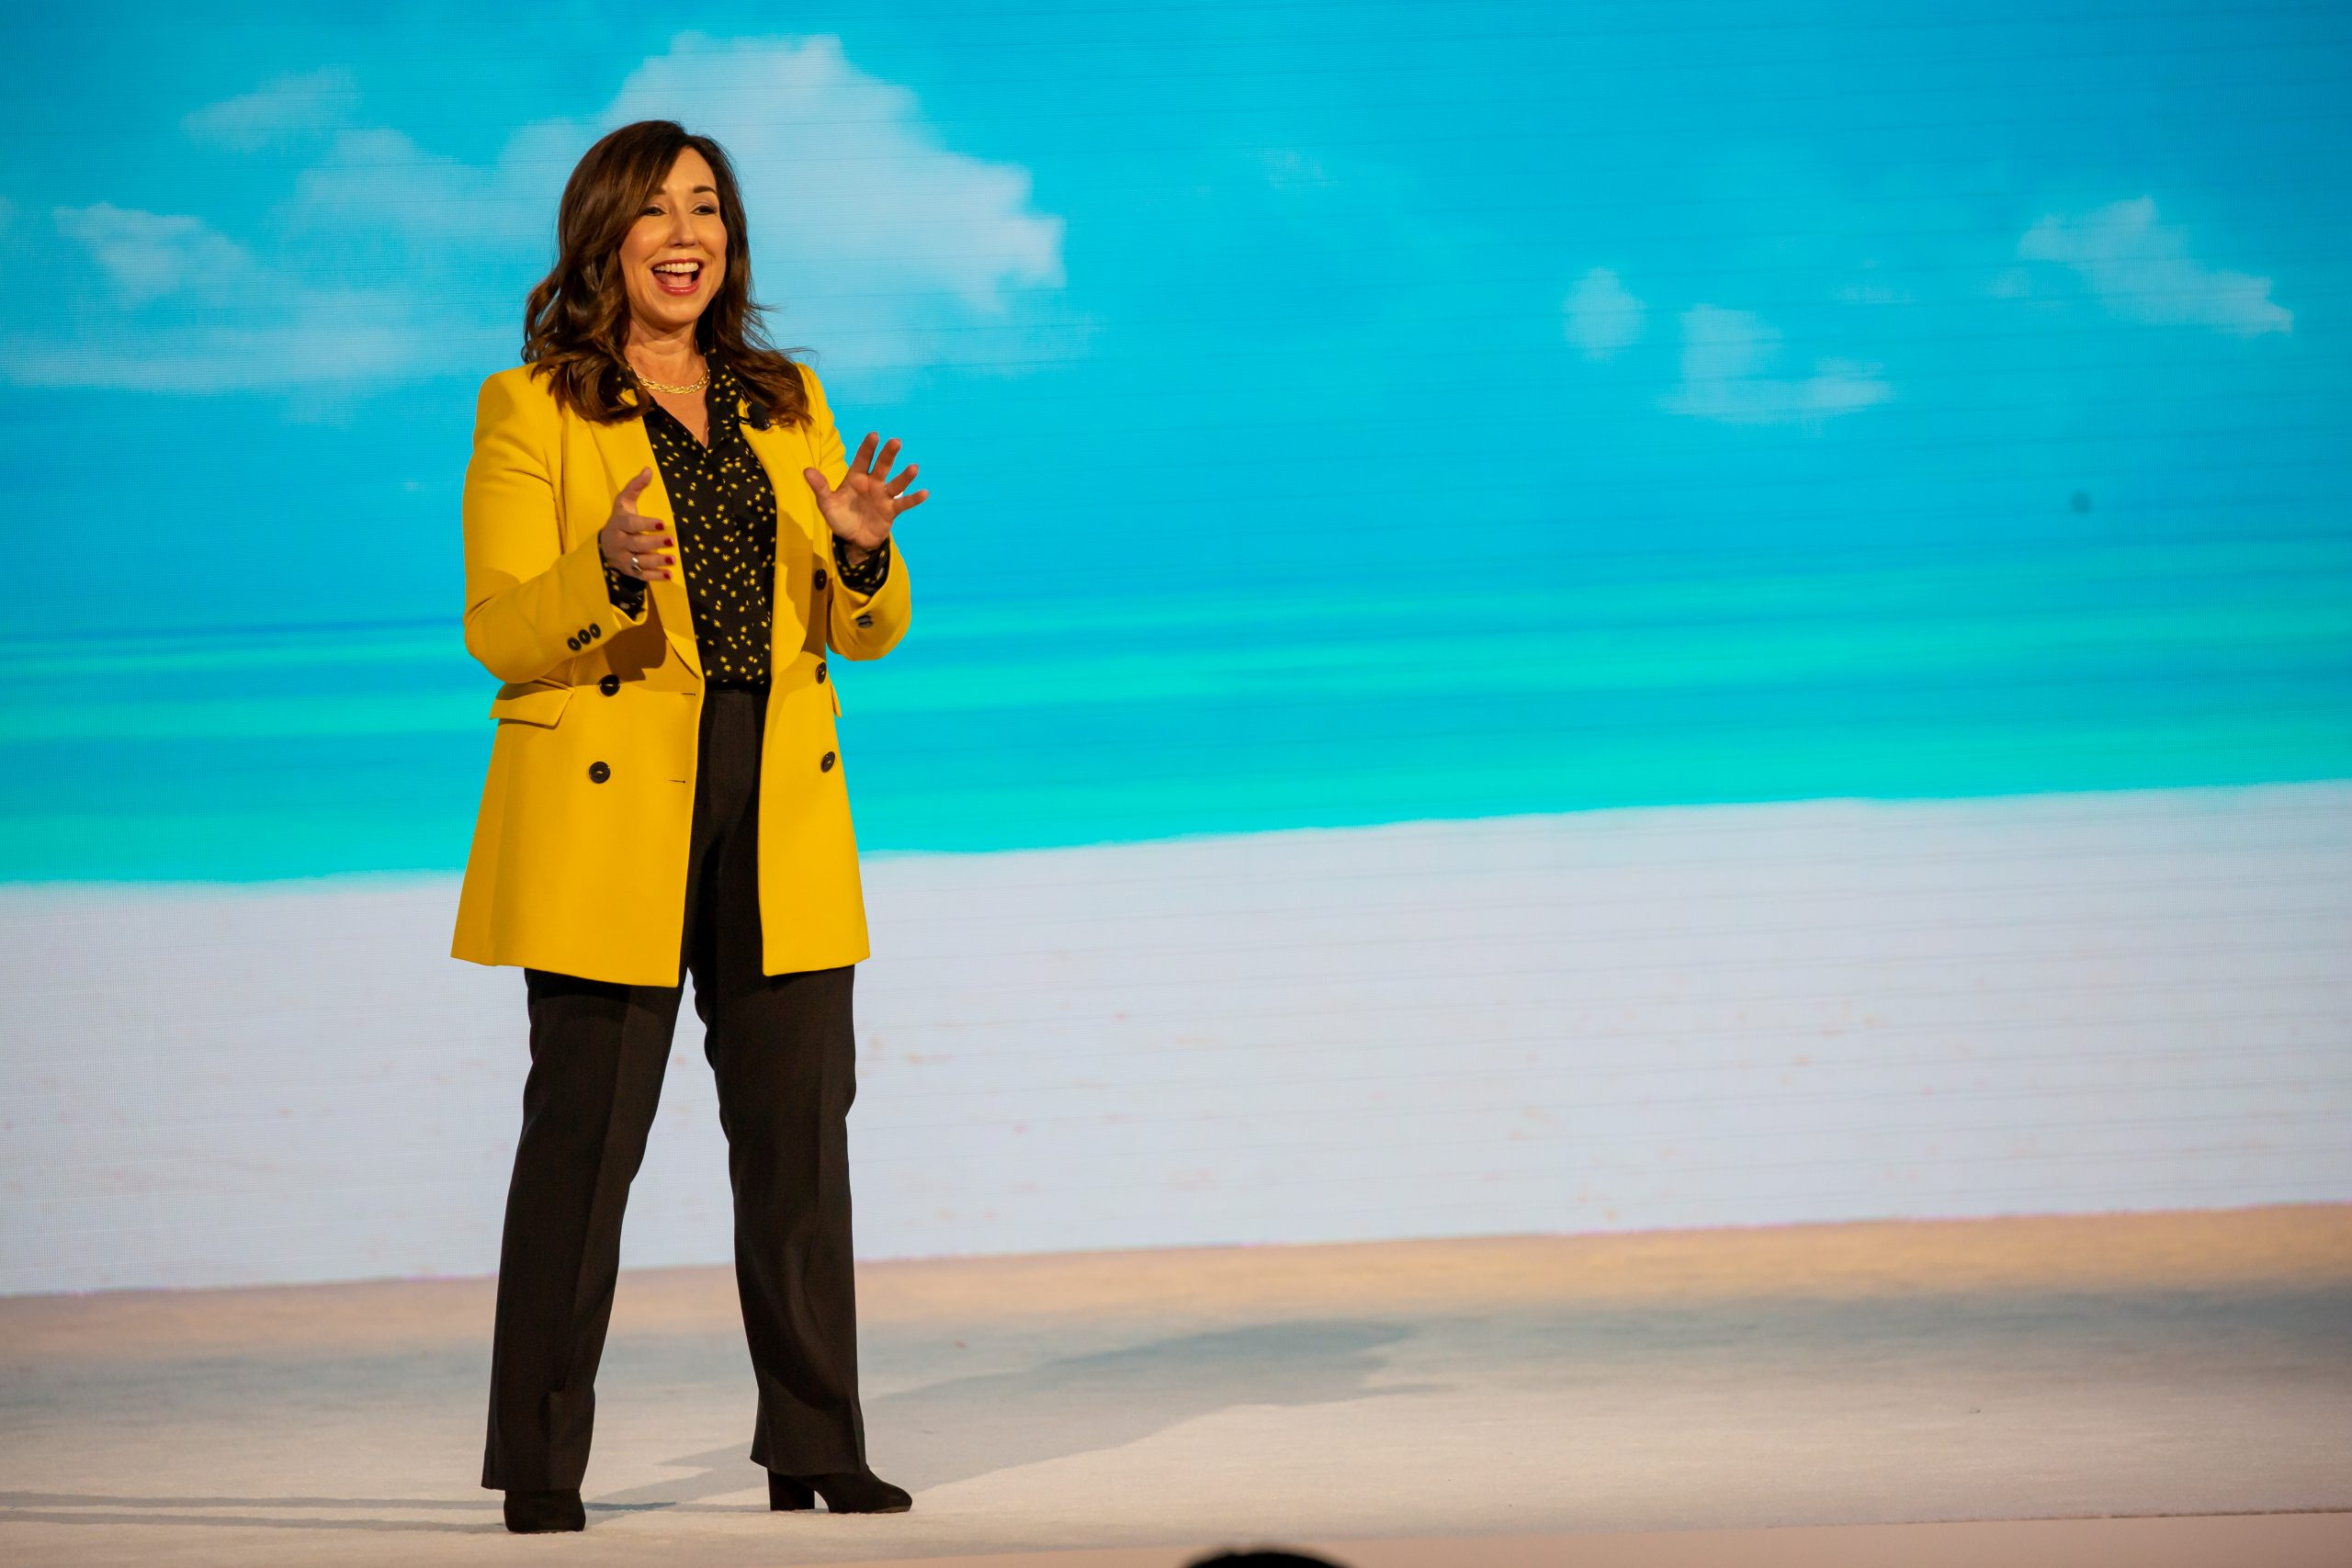 Christine Duffy Delivers Keynote Address at IAAPA Event